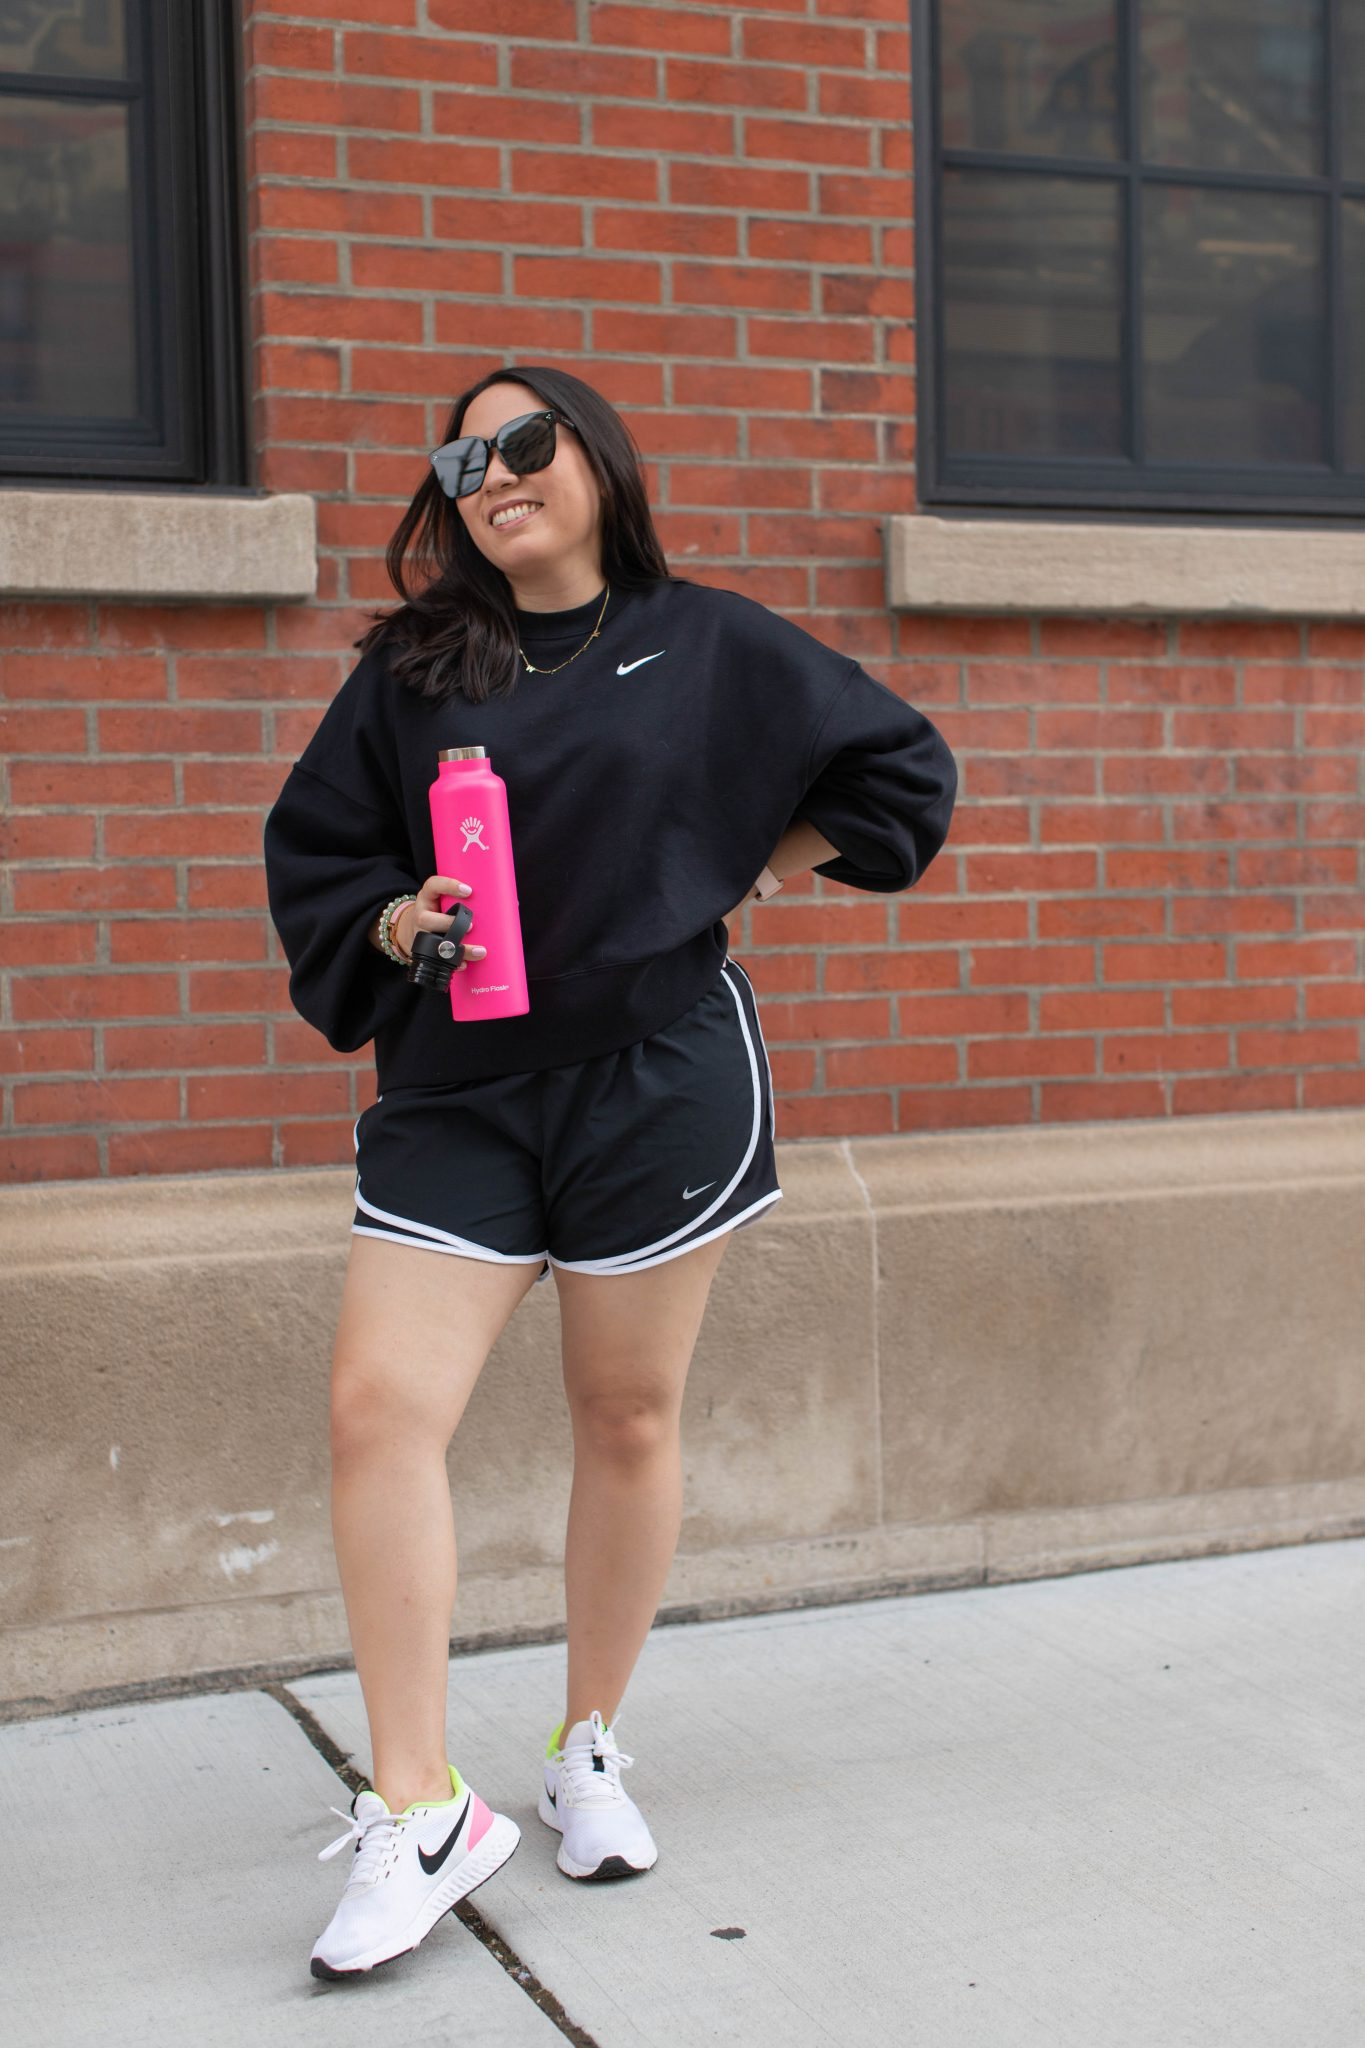 Nordstrom Anniversary Sale 2021 Haul by Basically A Mess (woman Nike sweatshirt and running short set, Hydro Flask bottle)